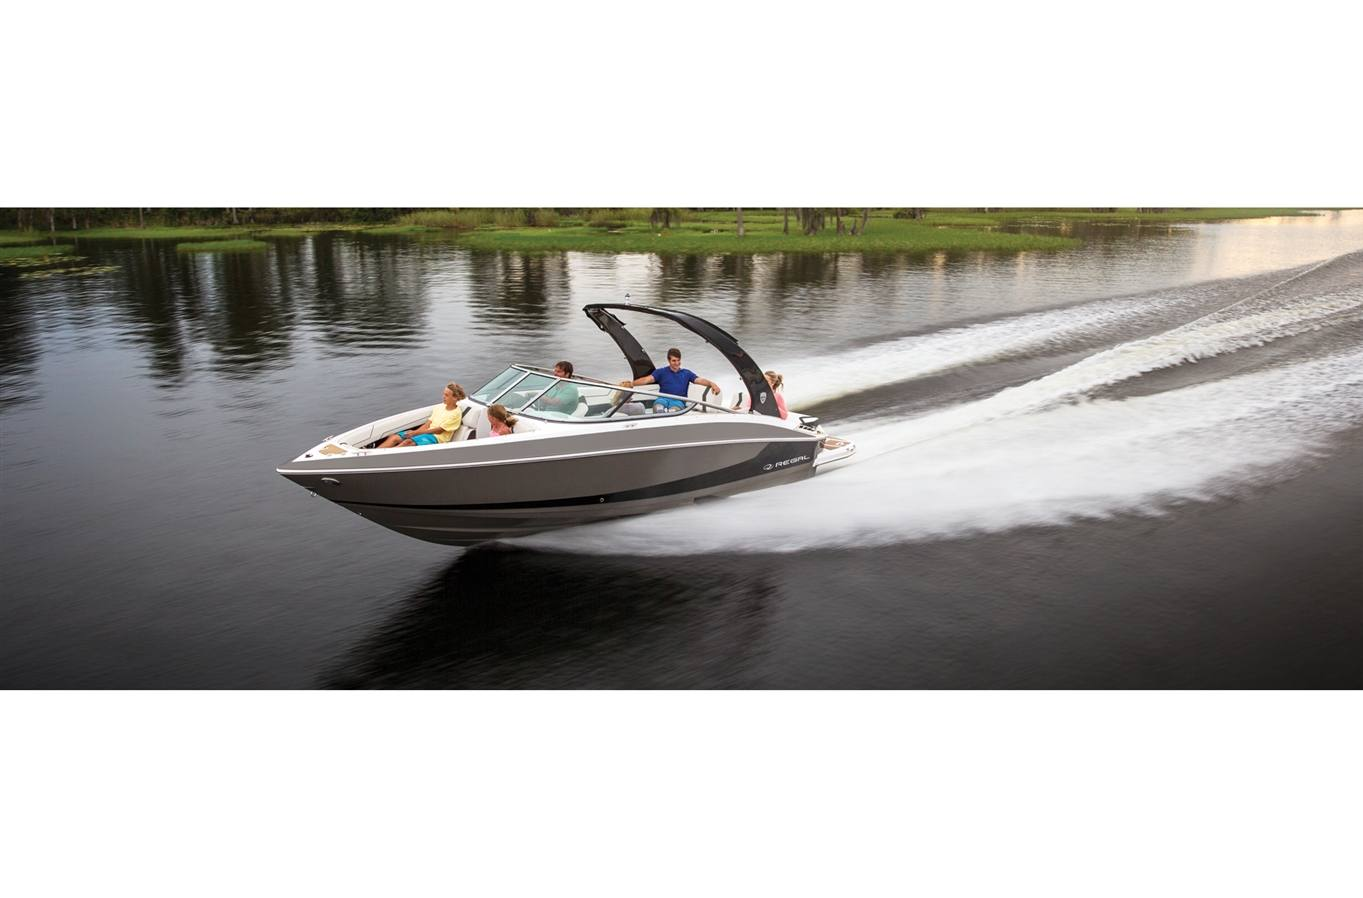 2019 Regal 2500 for sale in Appling, GA  Waterfront Marine